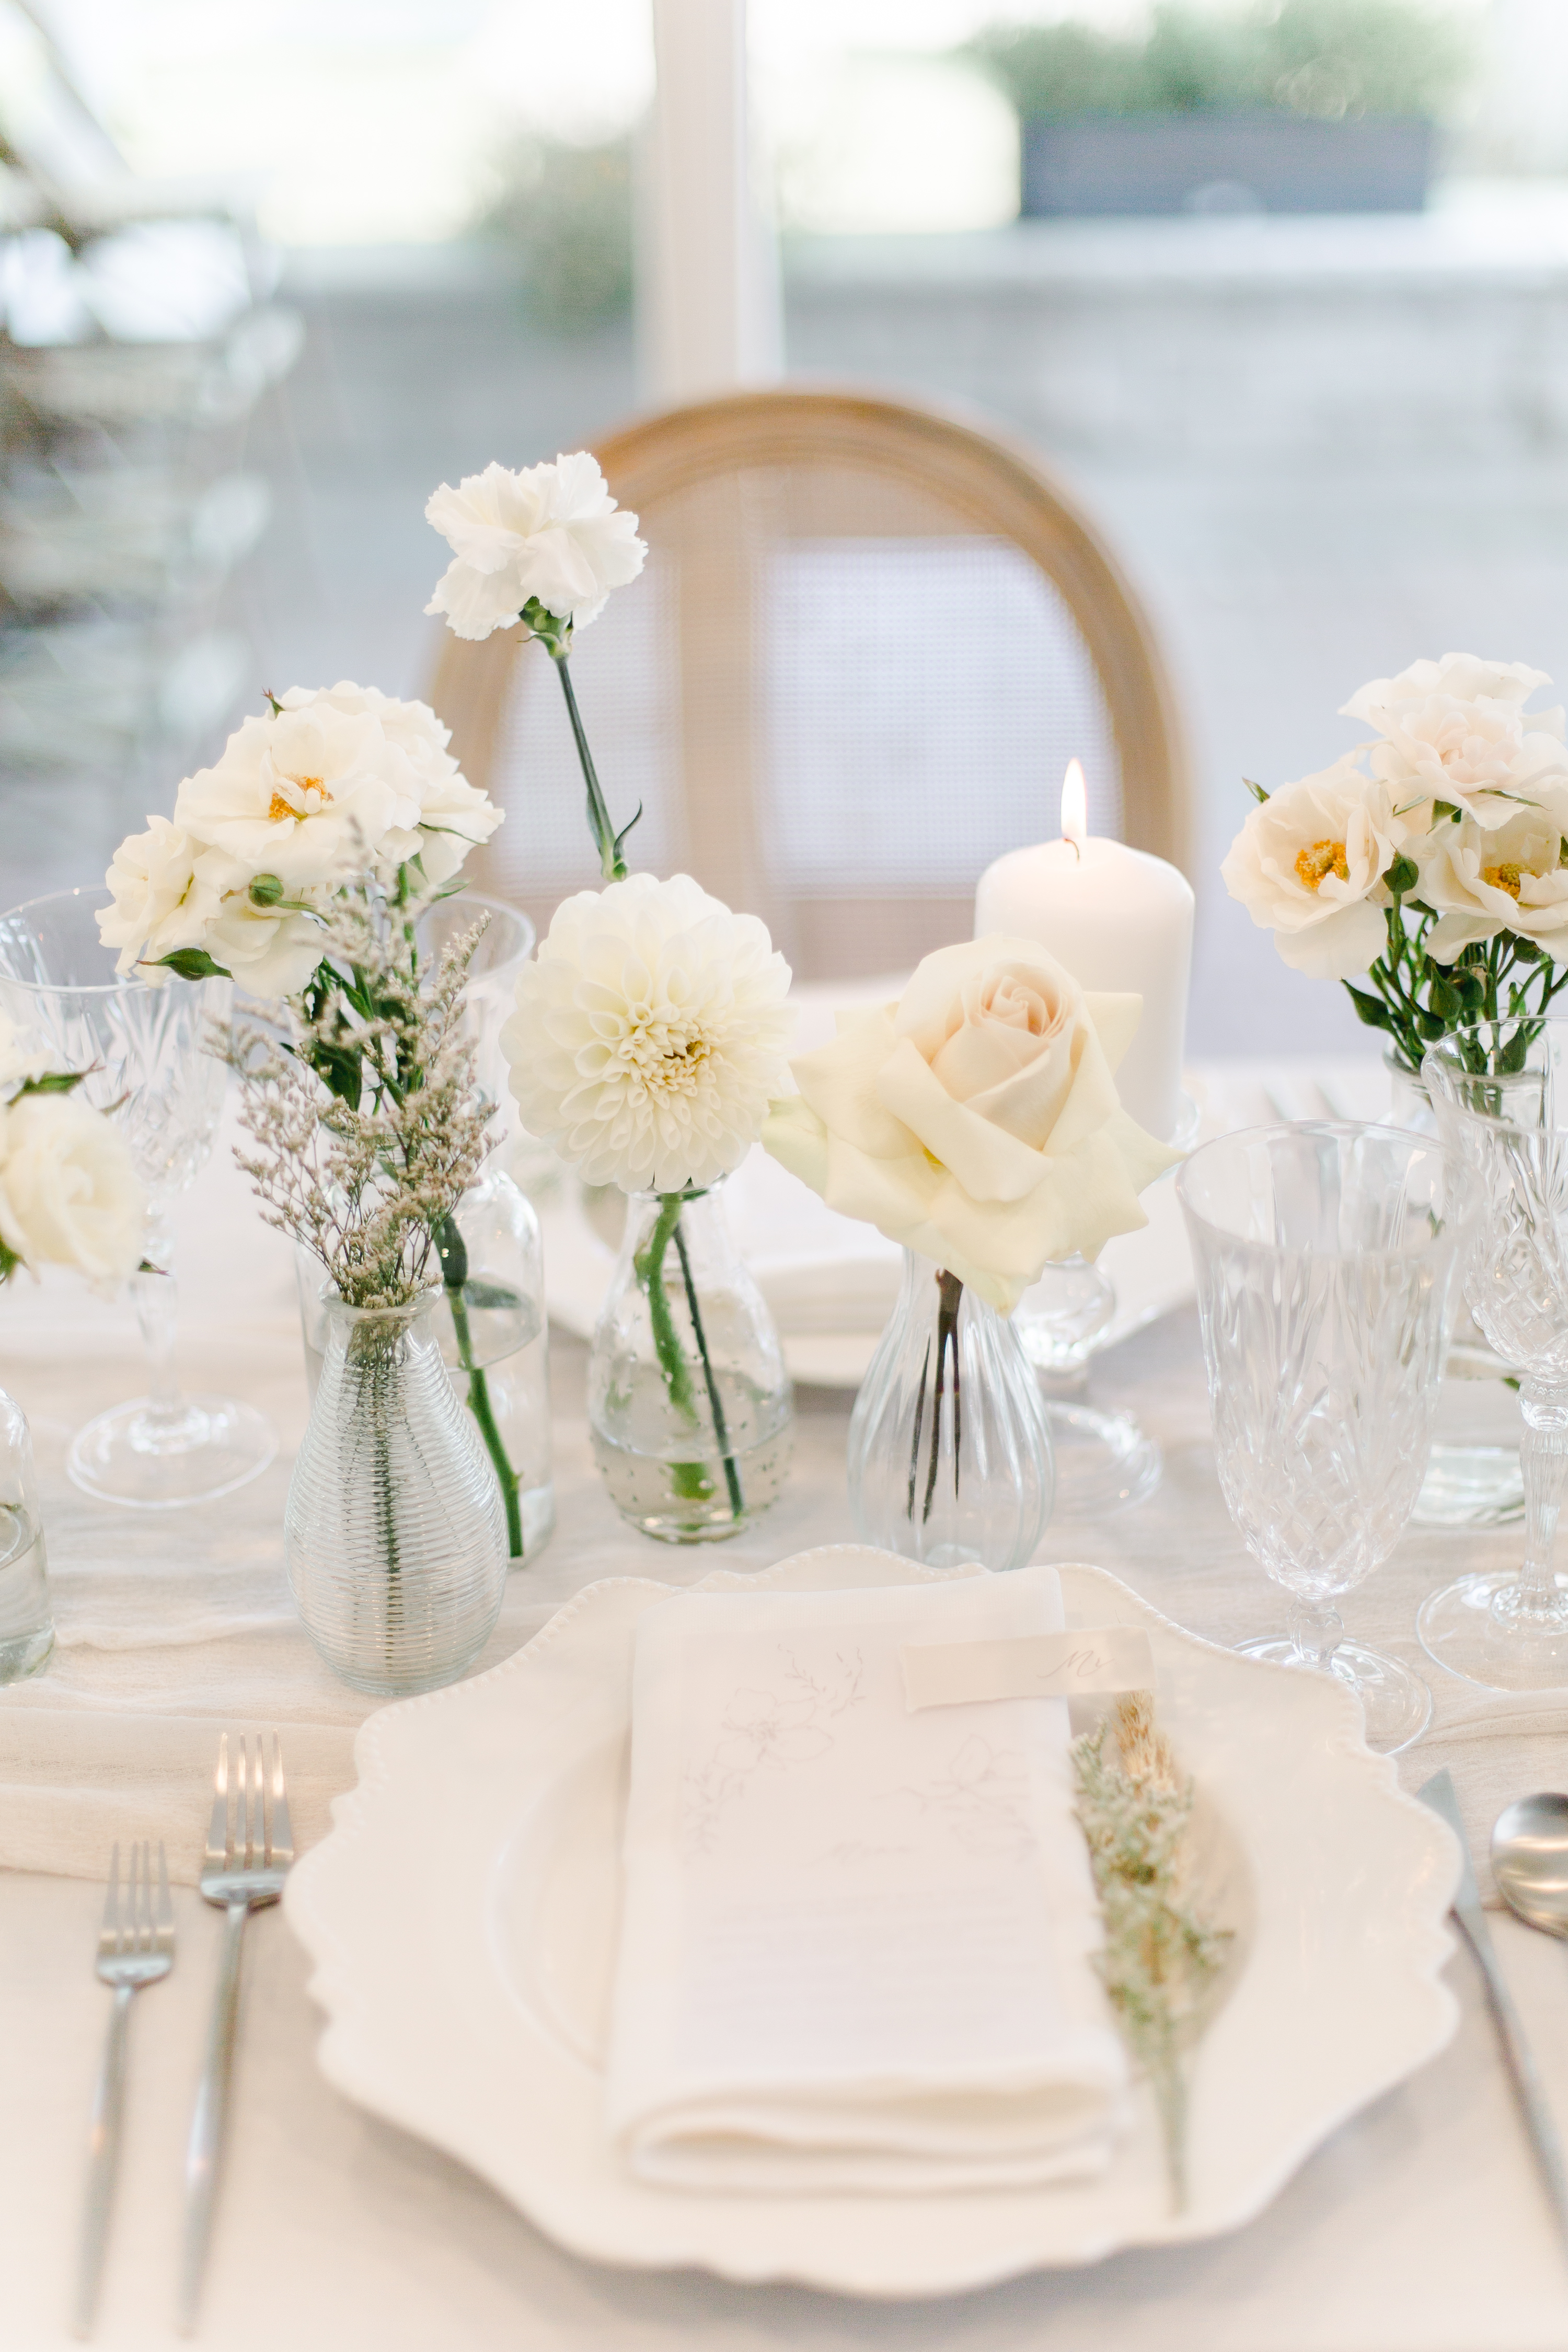 All white place setting for editorial shoot in Niagara-on-the-Lake